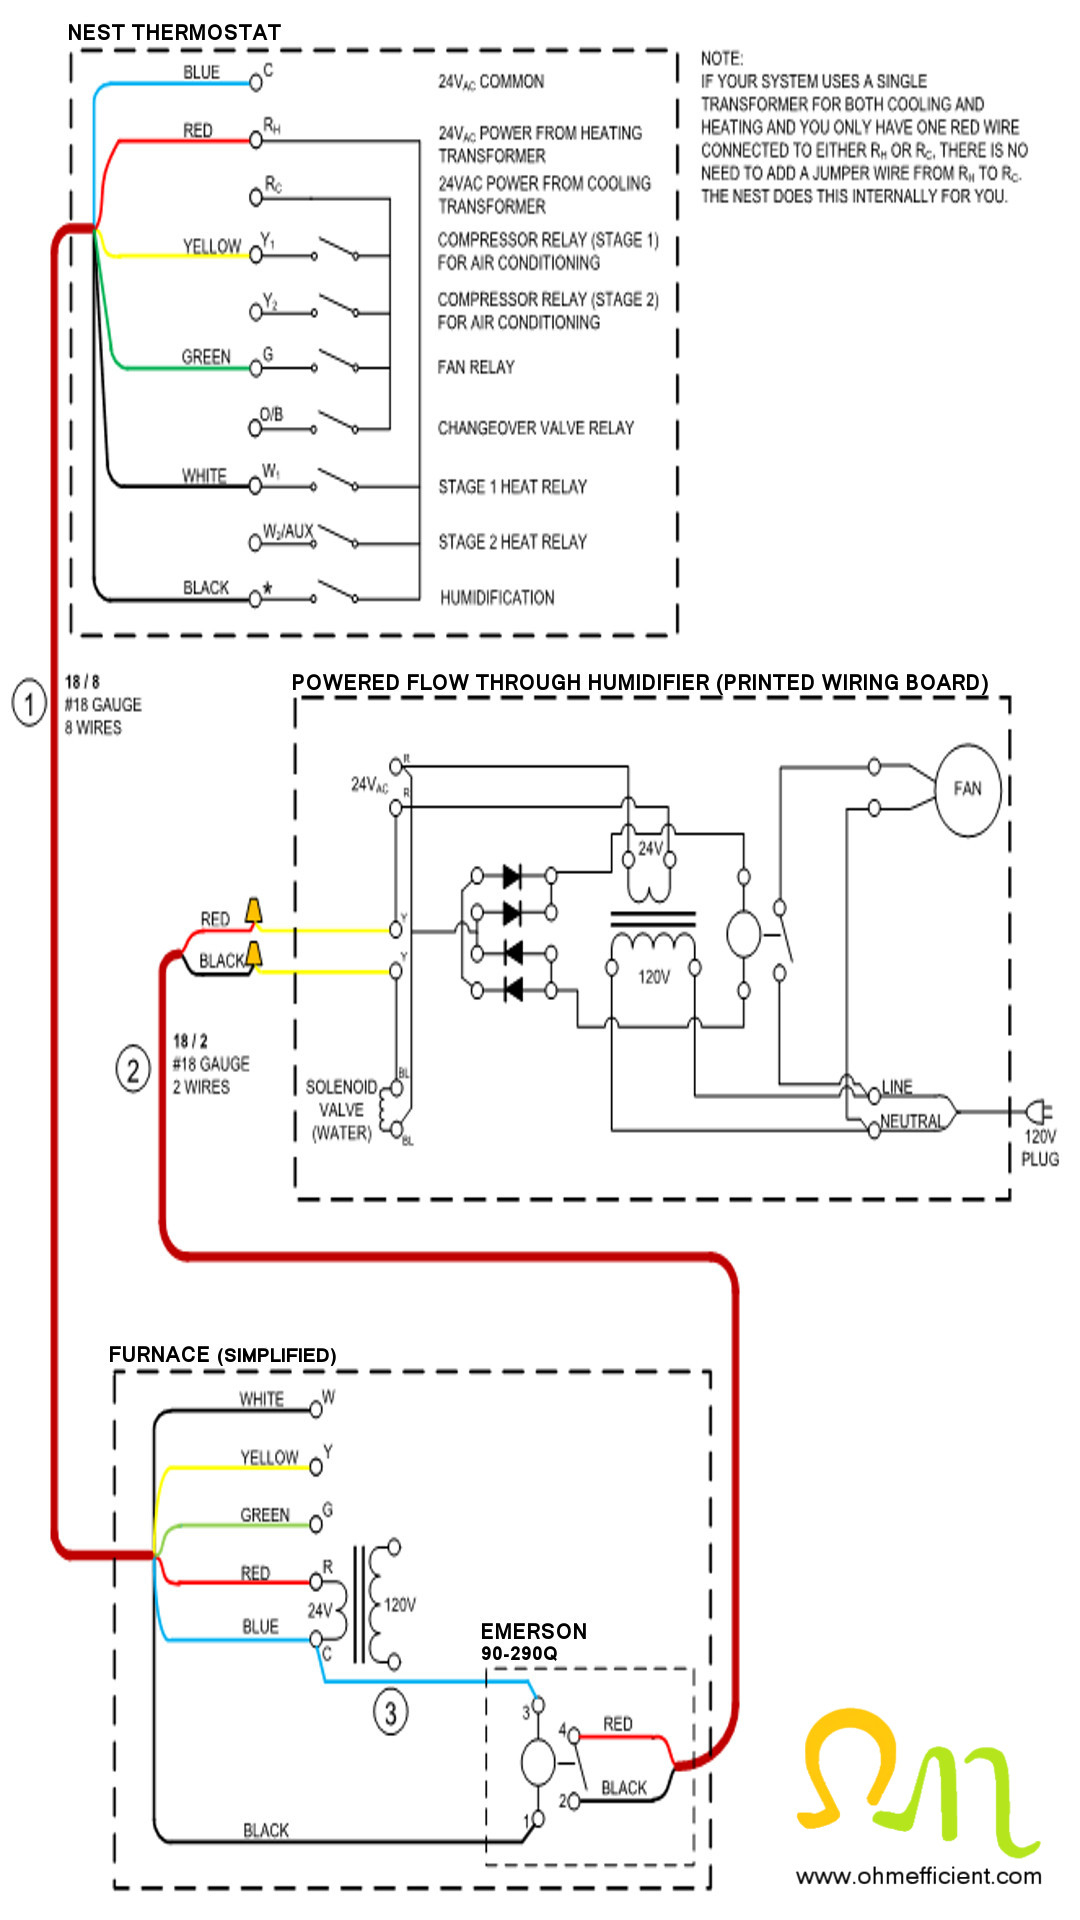 How To Connect & Setup A Nest Thermostat To Function As A Humidistat - Nest Wiring Diagram Humidifier